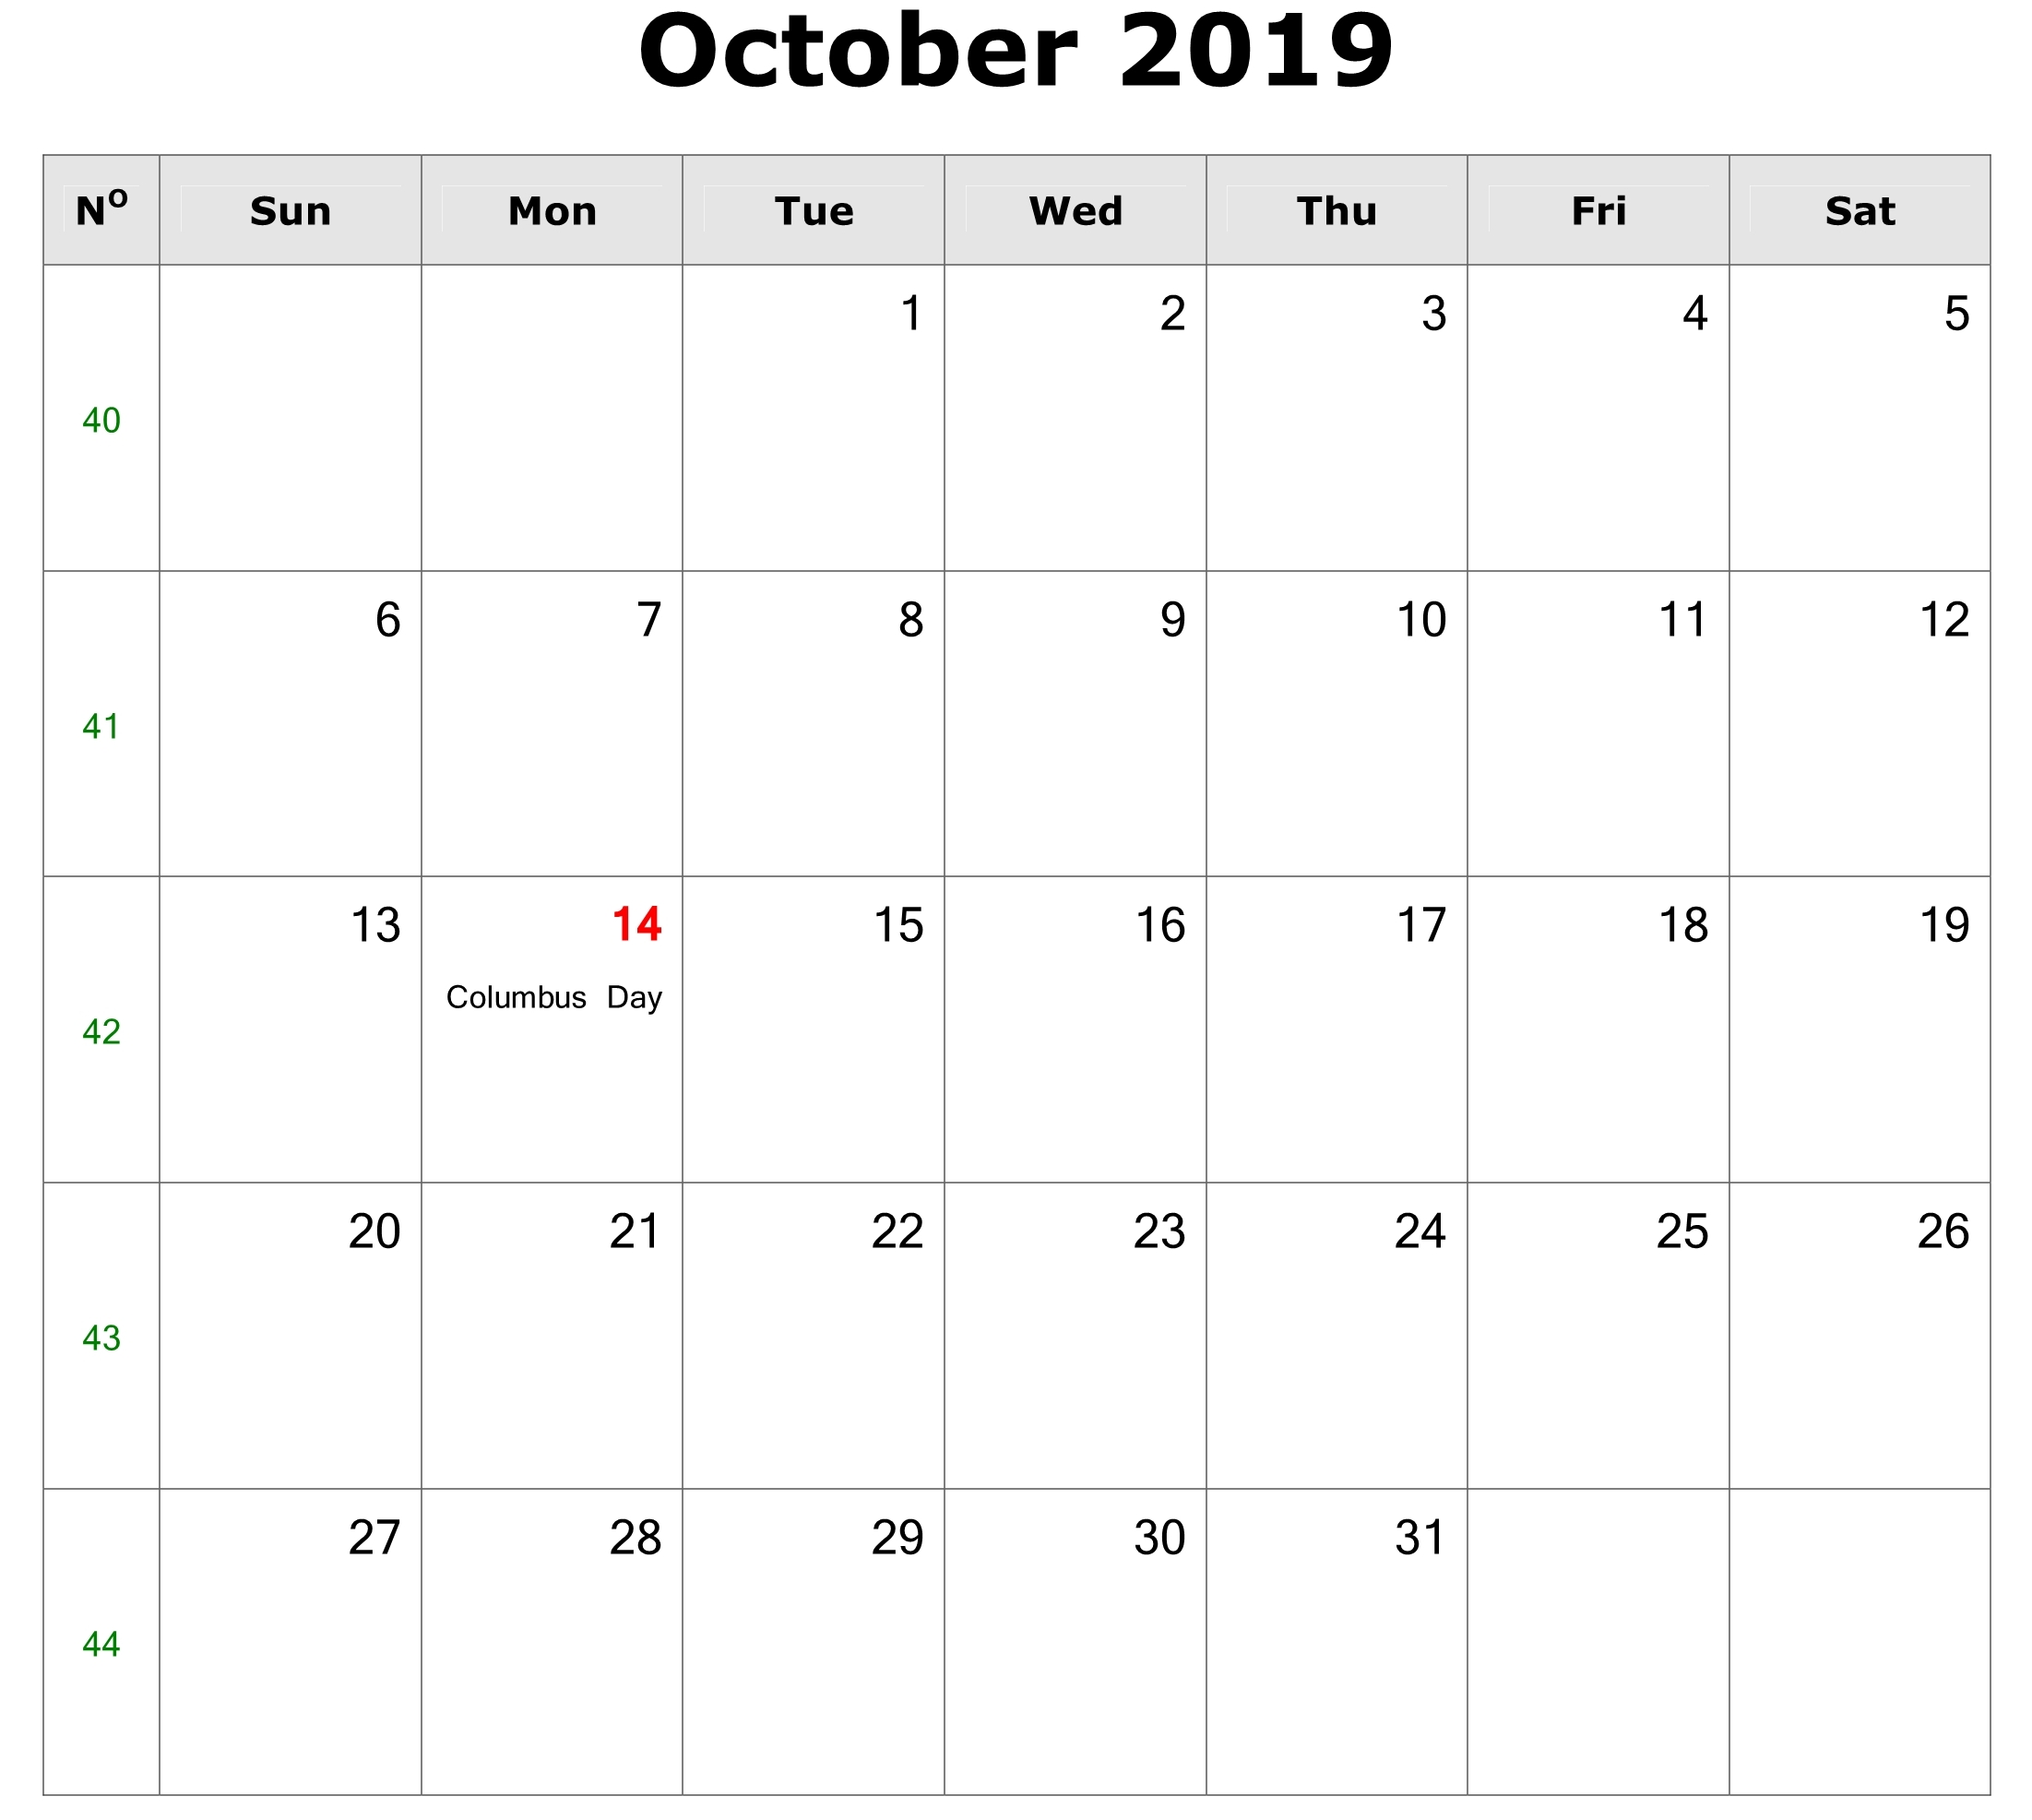 October Calendar 2019 with Holidays